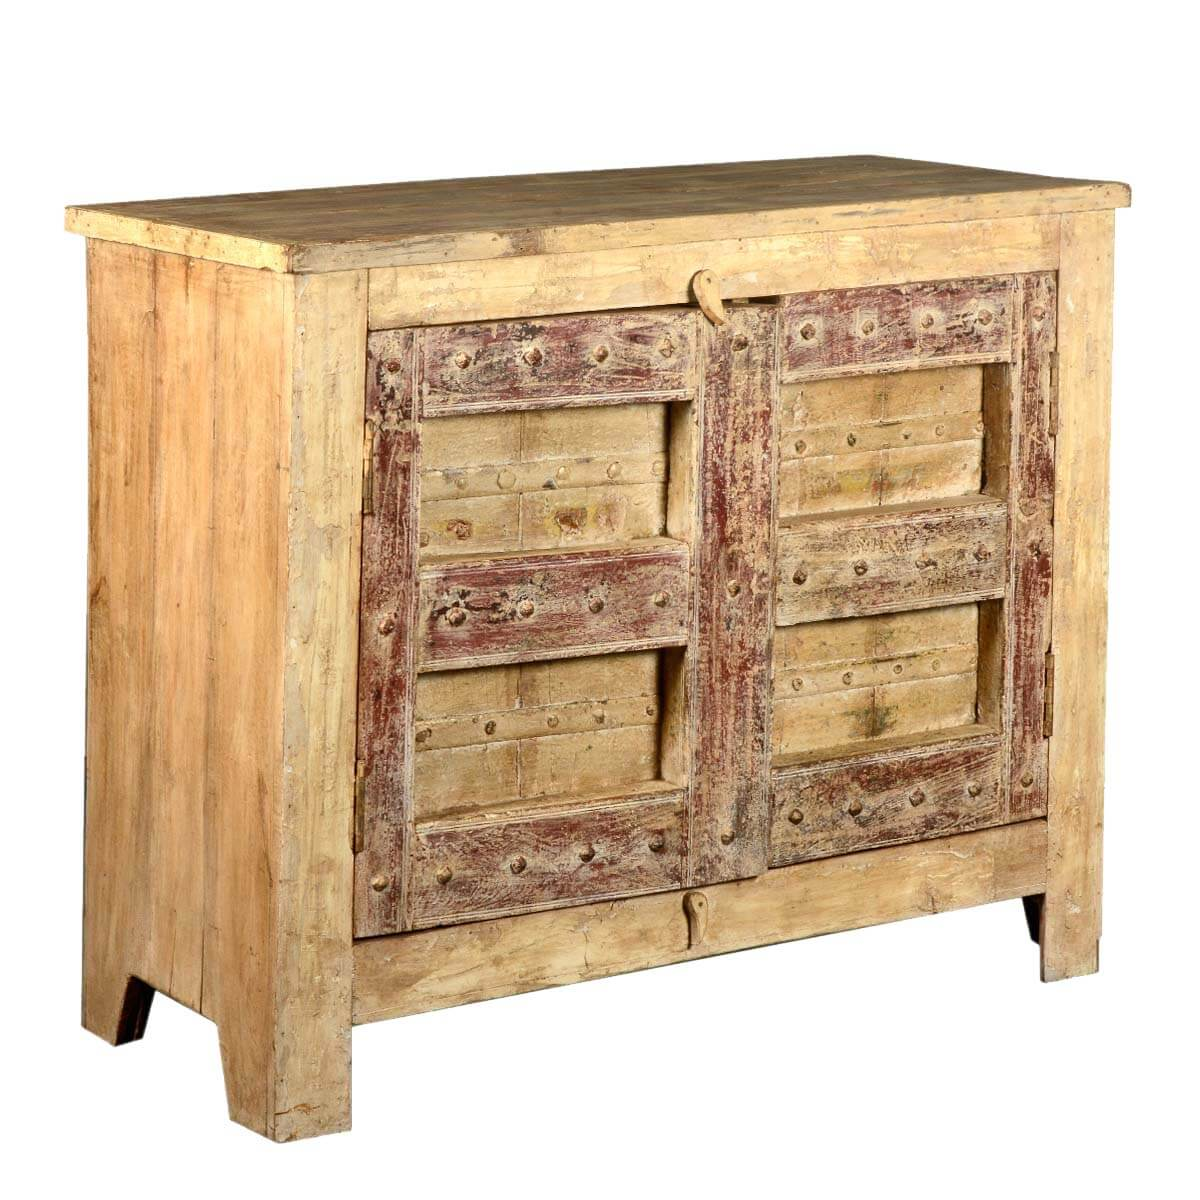 Reclaimed Wood Cabinets ~ Rustic reclaimed wood furniture buffet gothic door